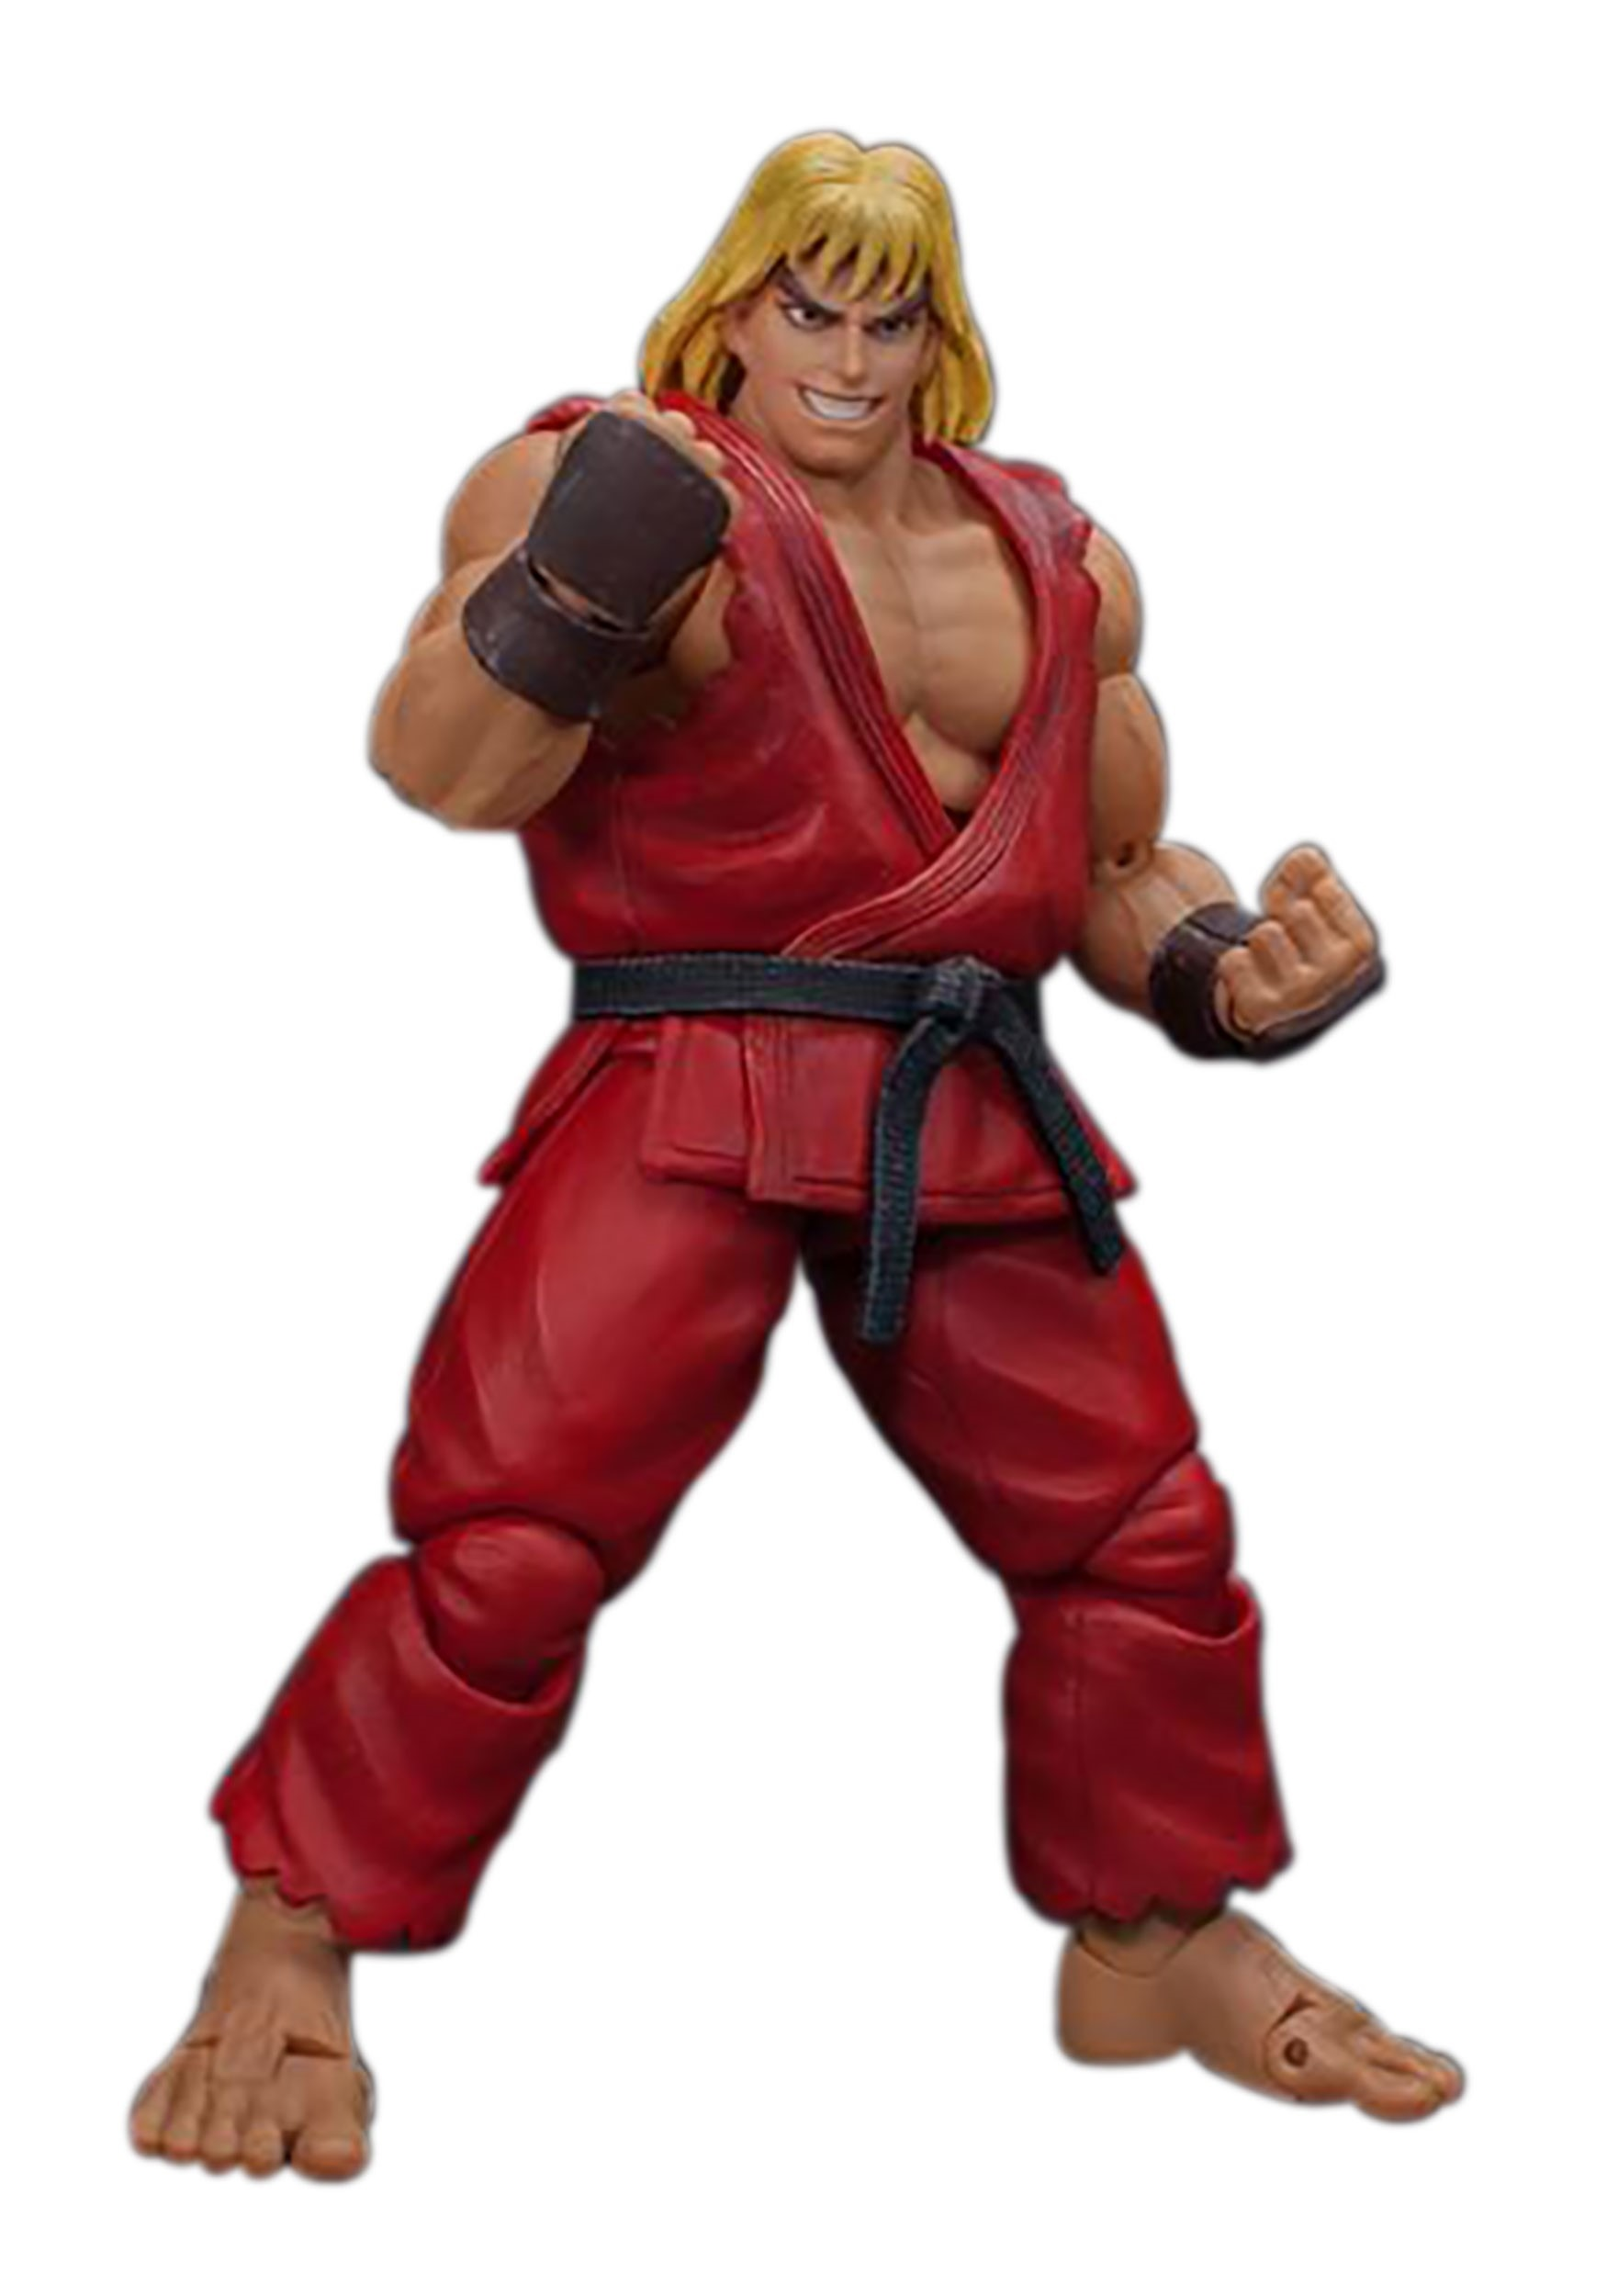 Ultra_Street_Fighter_II_Ken_Action_Figure_Collectible